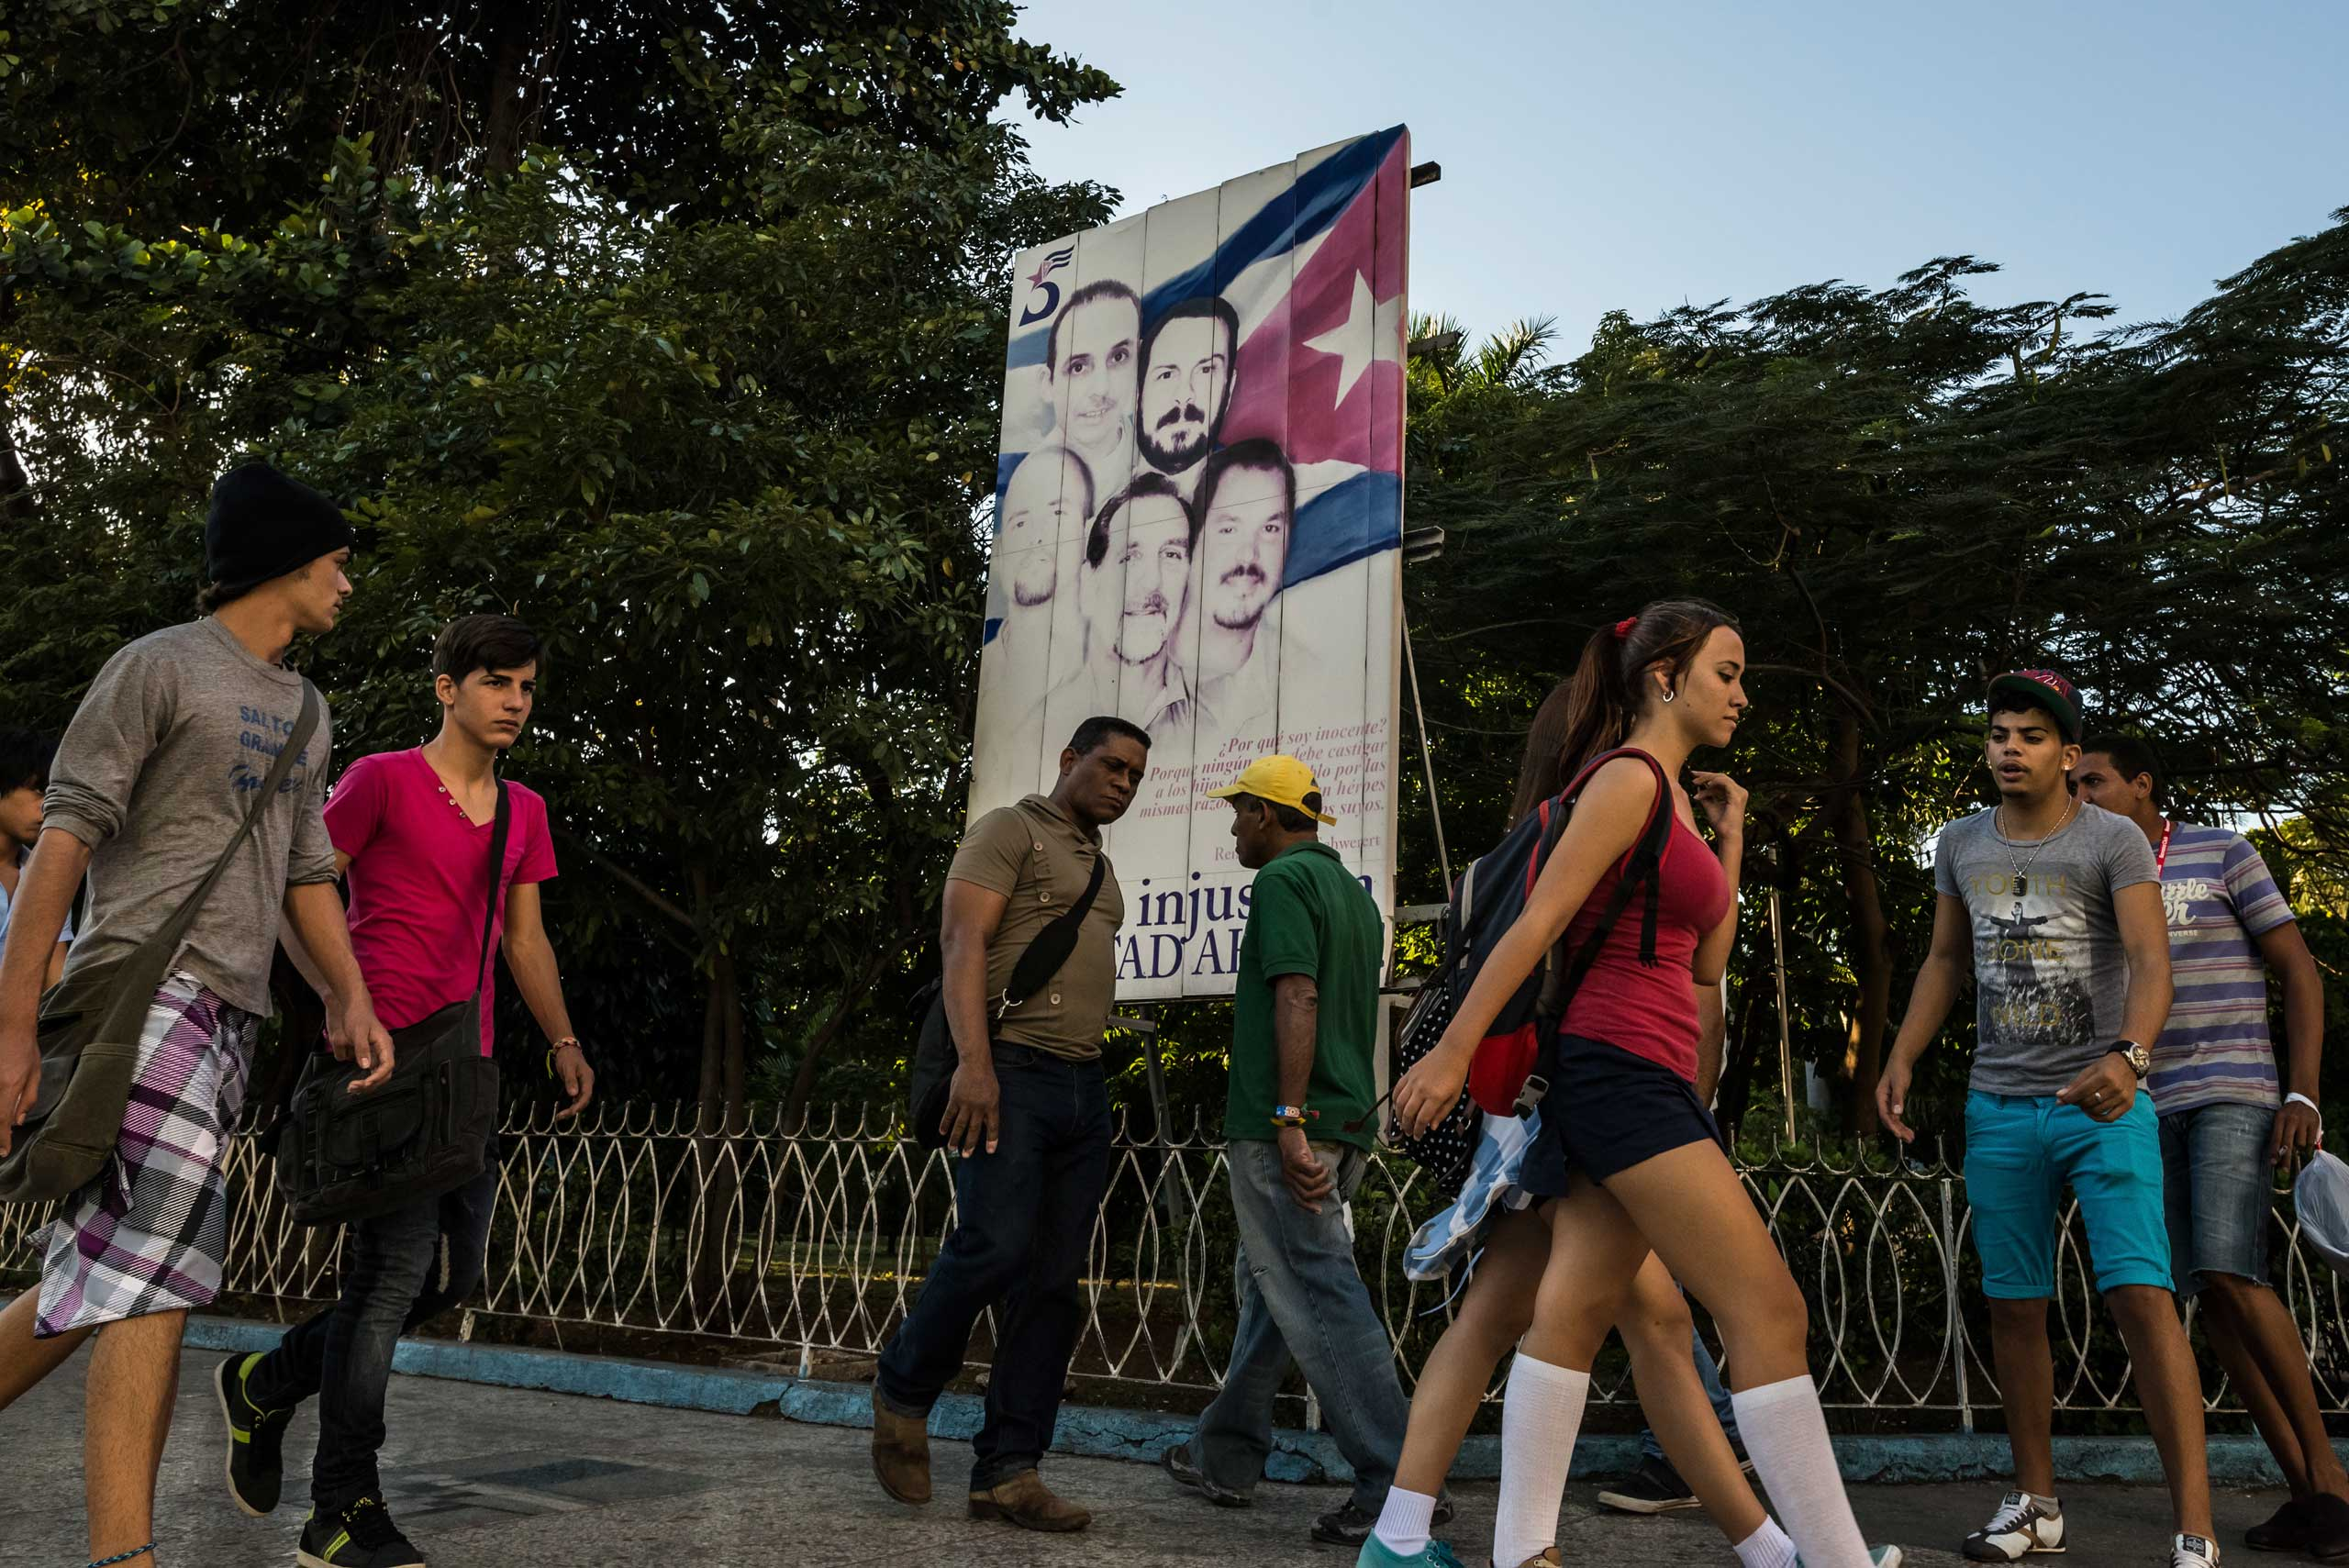 Dec. 18, 2014. People pass a poster calling for the release of the Cuban Five spies, the last of who were released the day before, in Havana, Cuba.